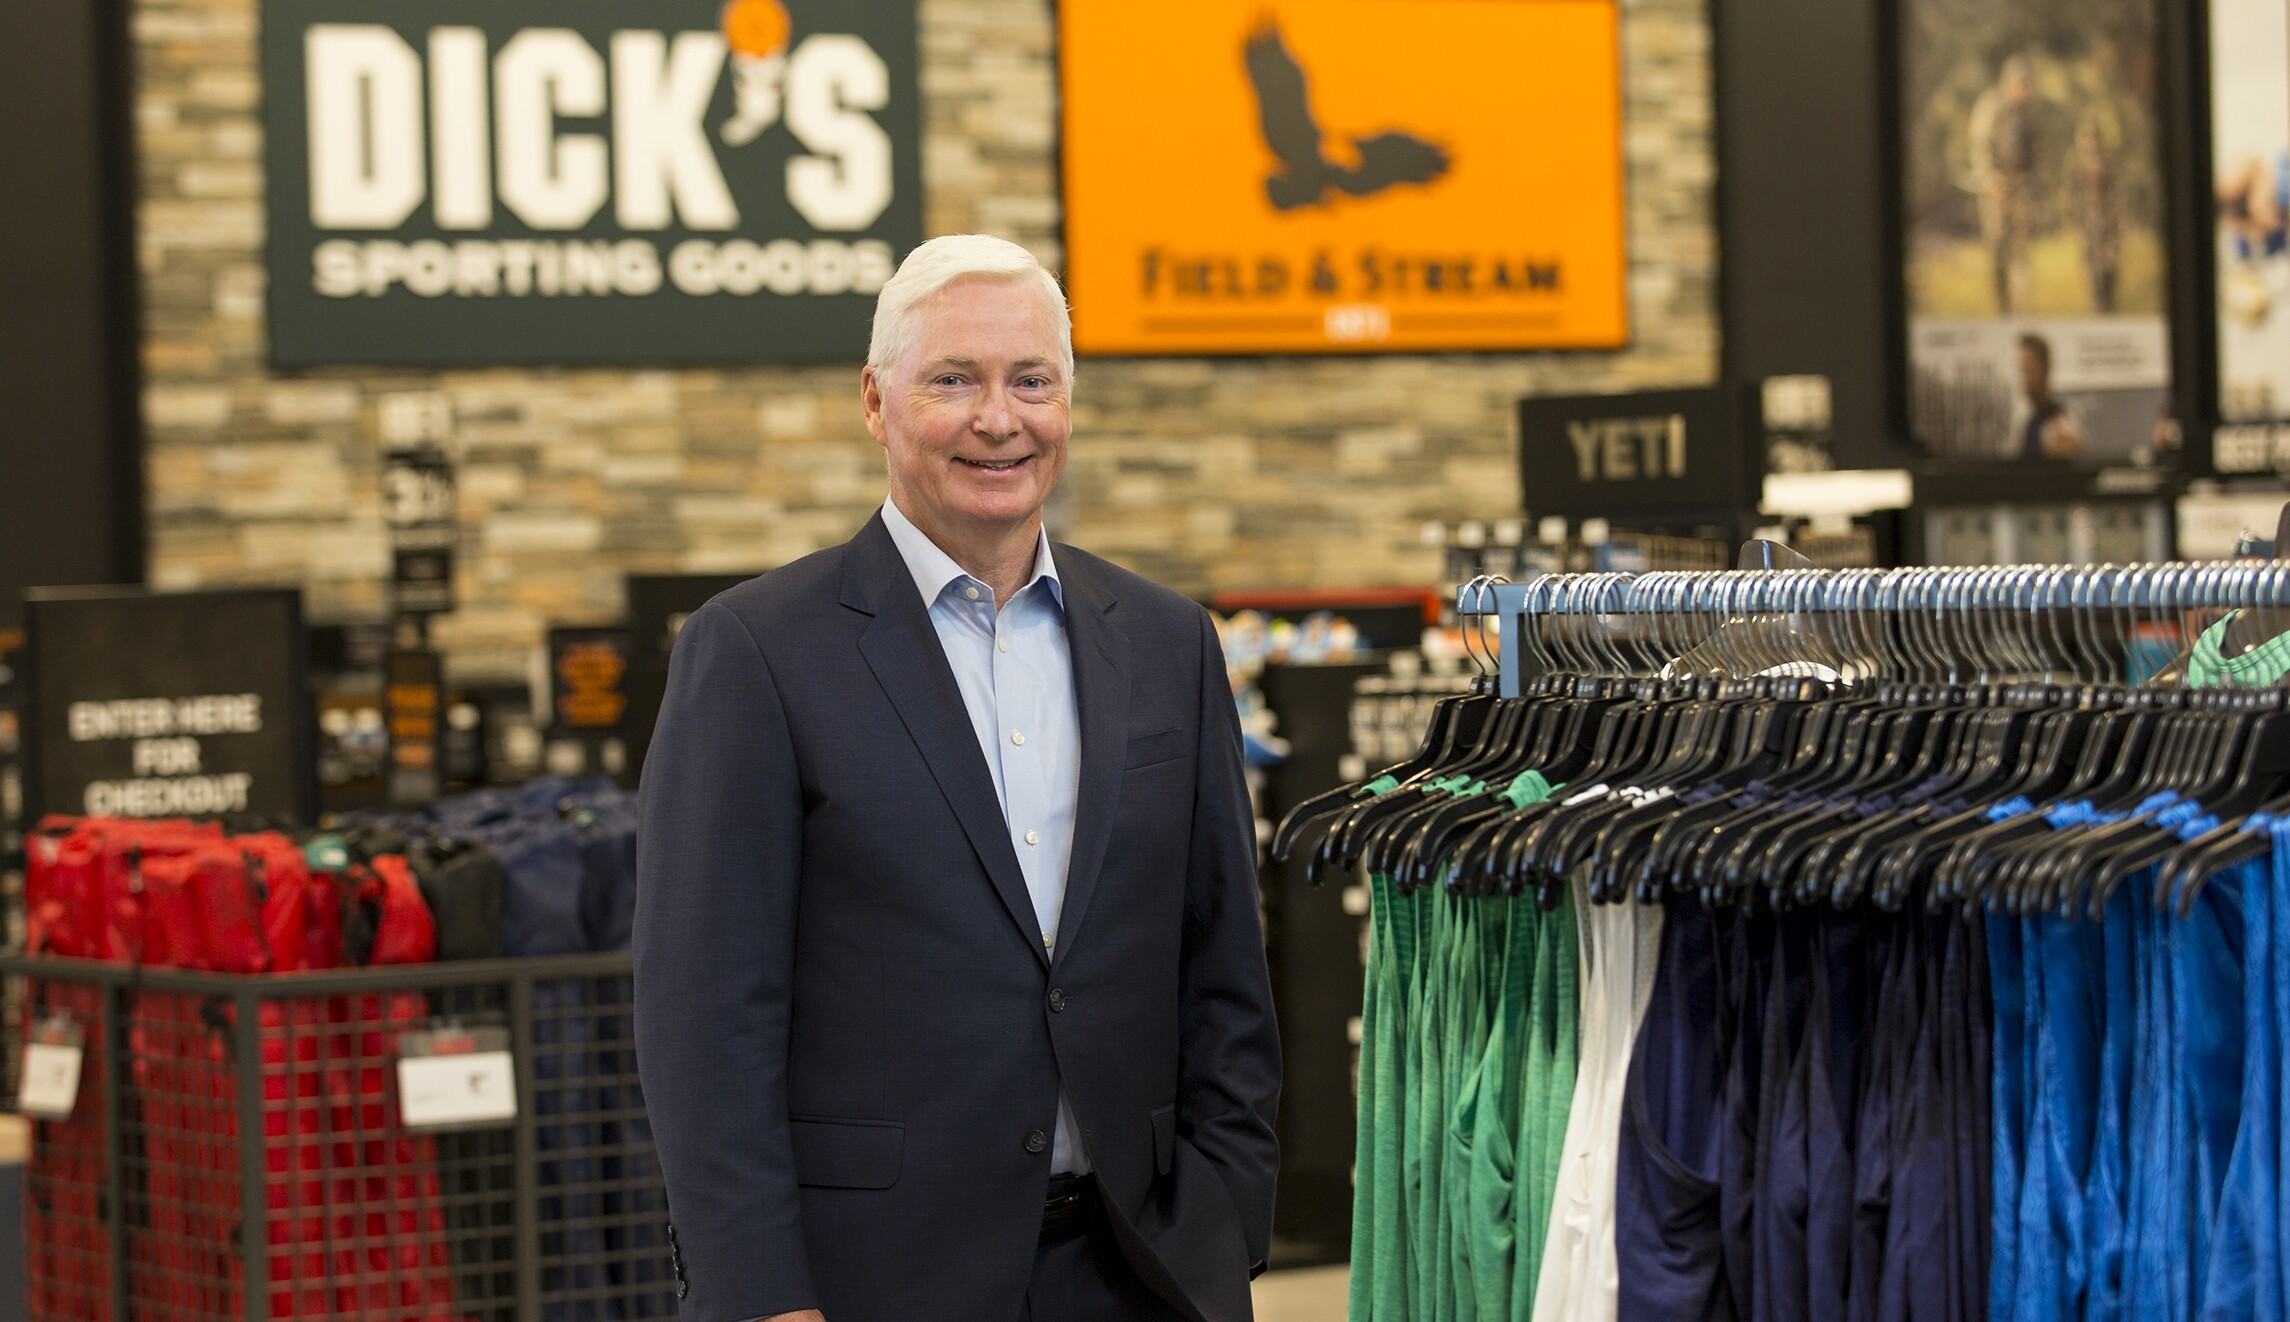 Dick's Sporting Goods ends sales of AR-15s and semi